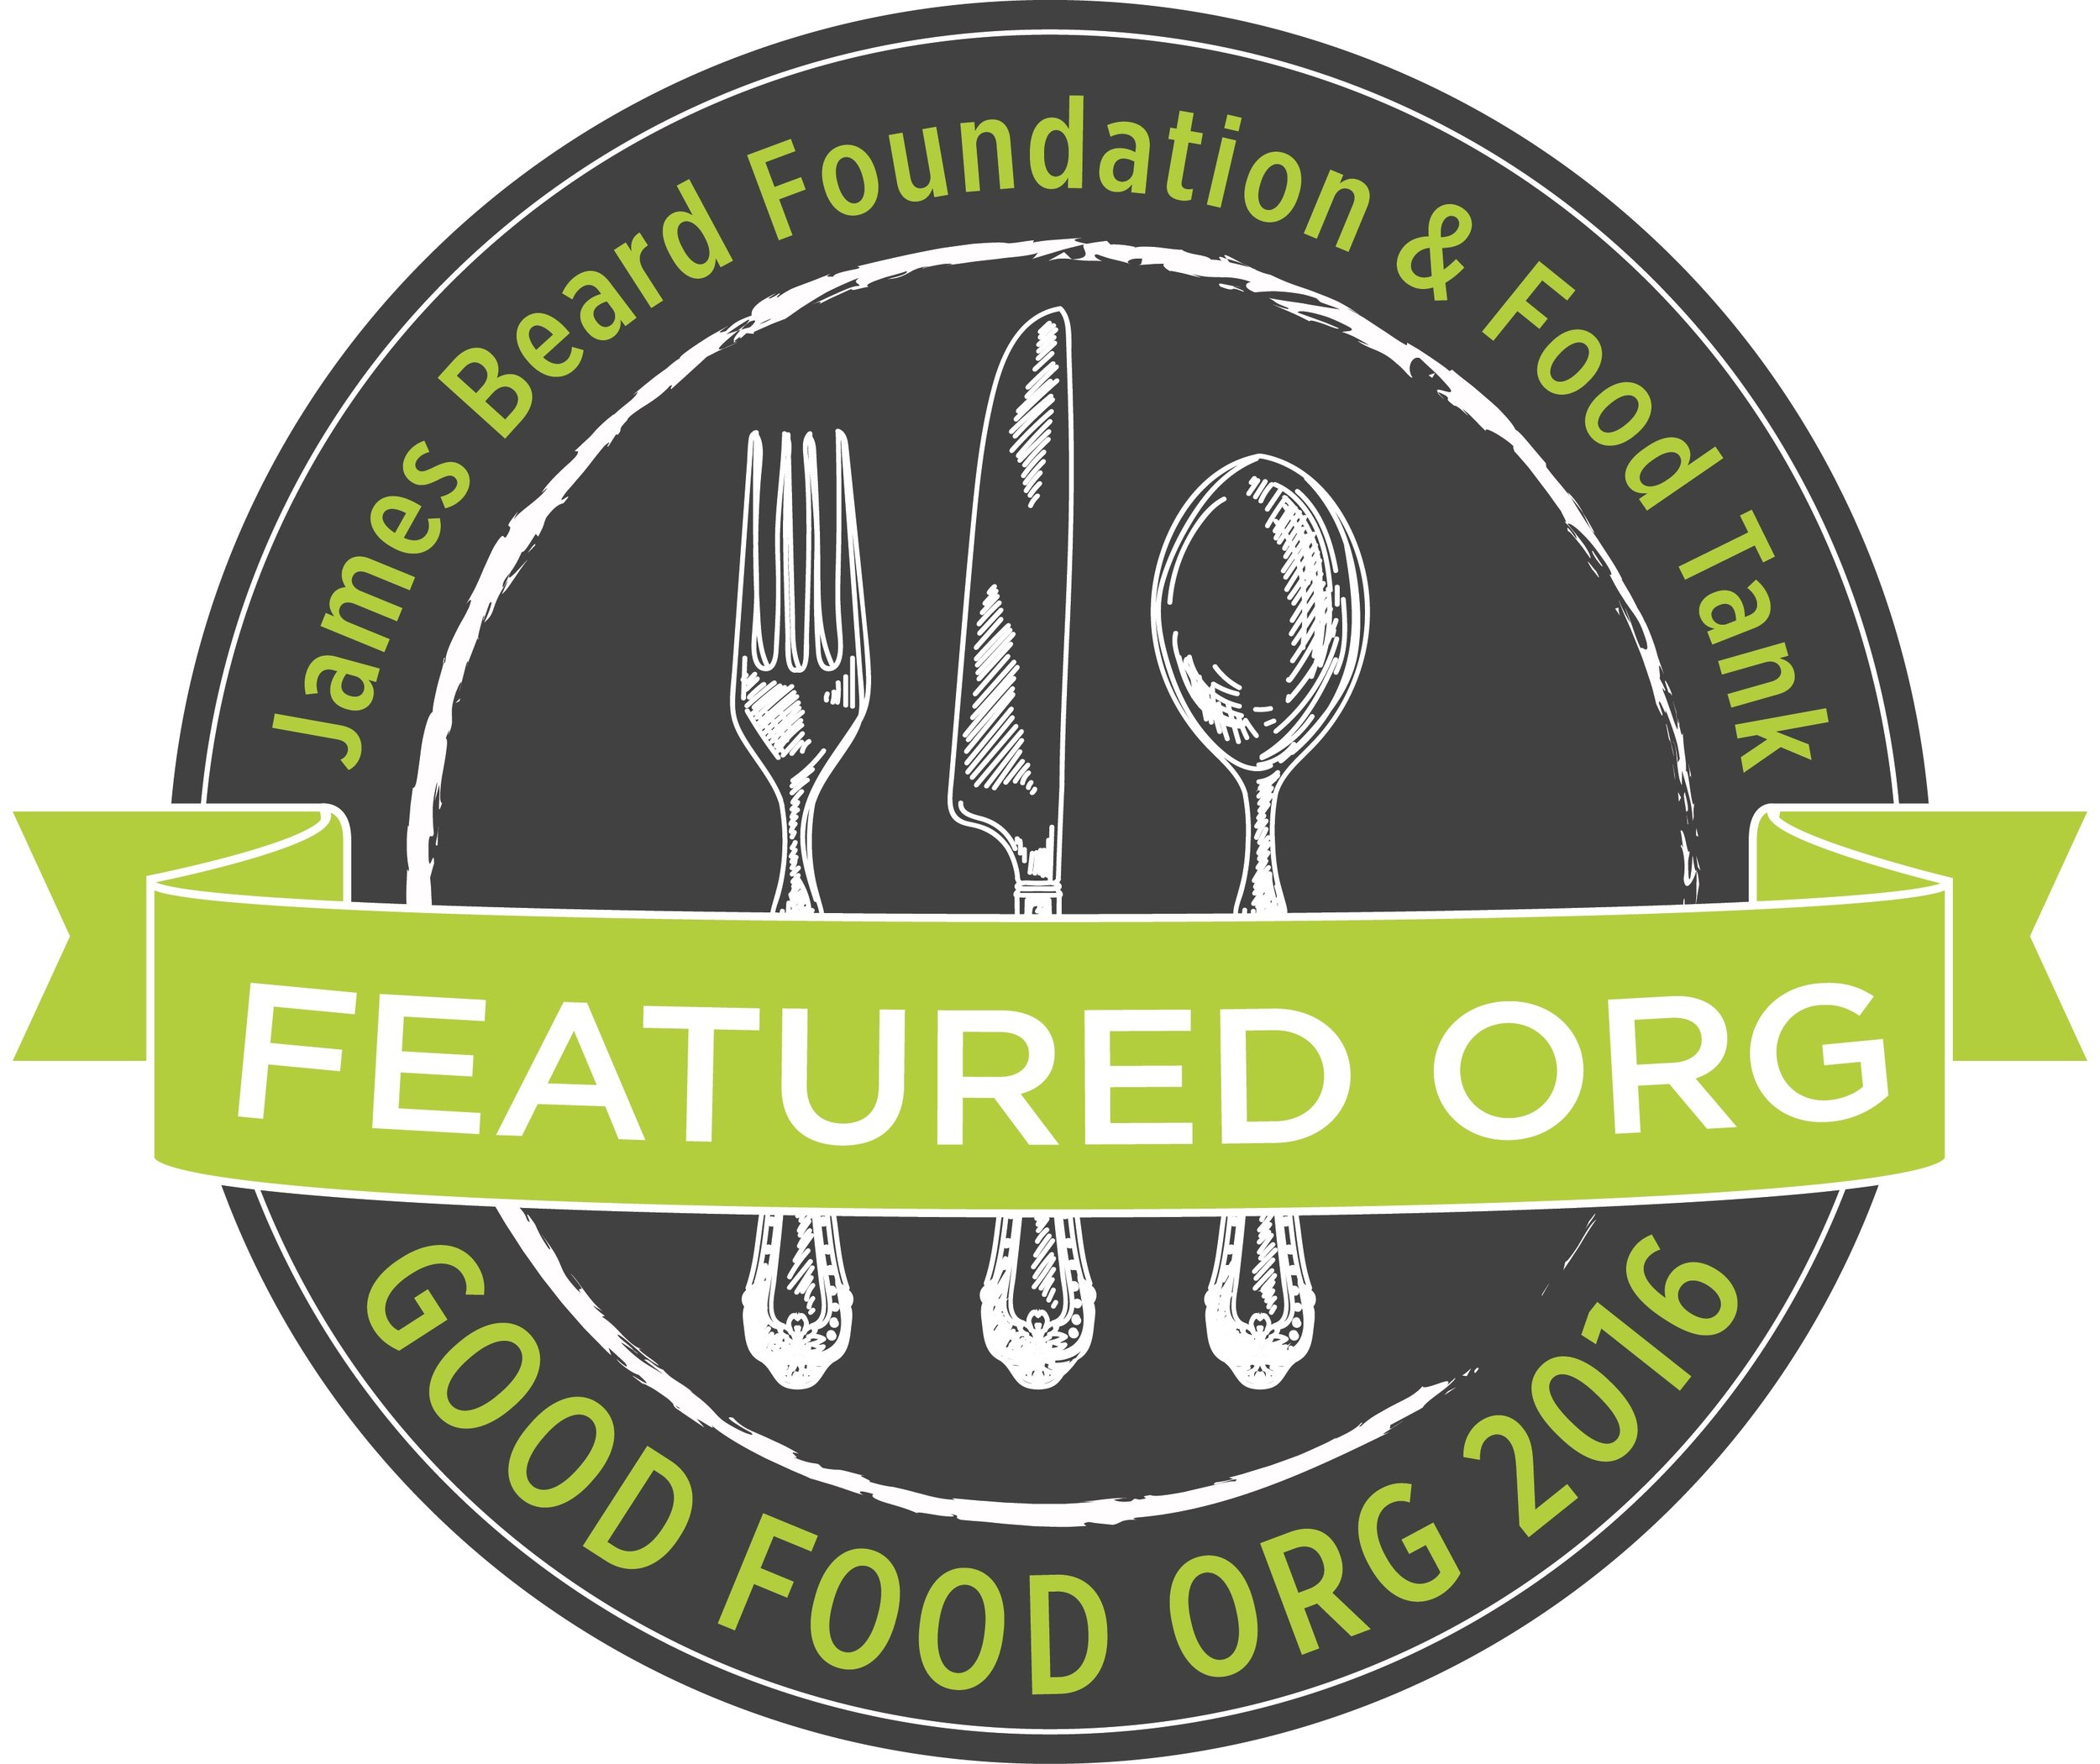 RVF2S is honored to be a featured organization in the Good Food Org Guide! Check out our listing and search nearly 1,000 other amazing organizations!